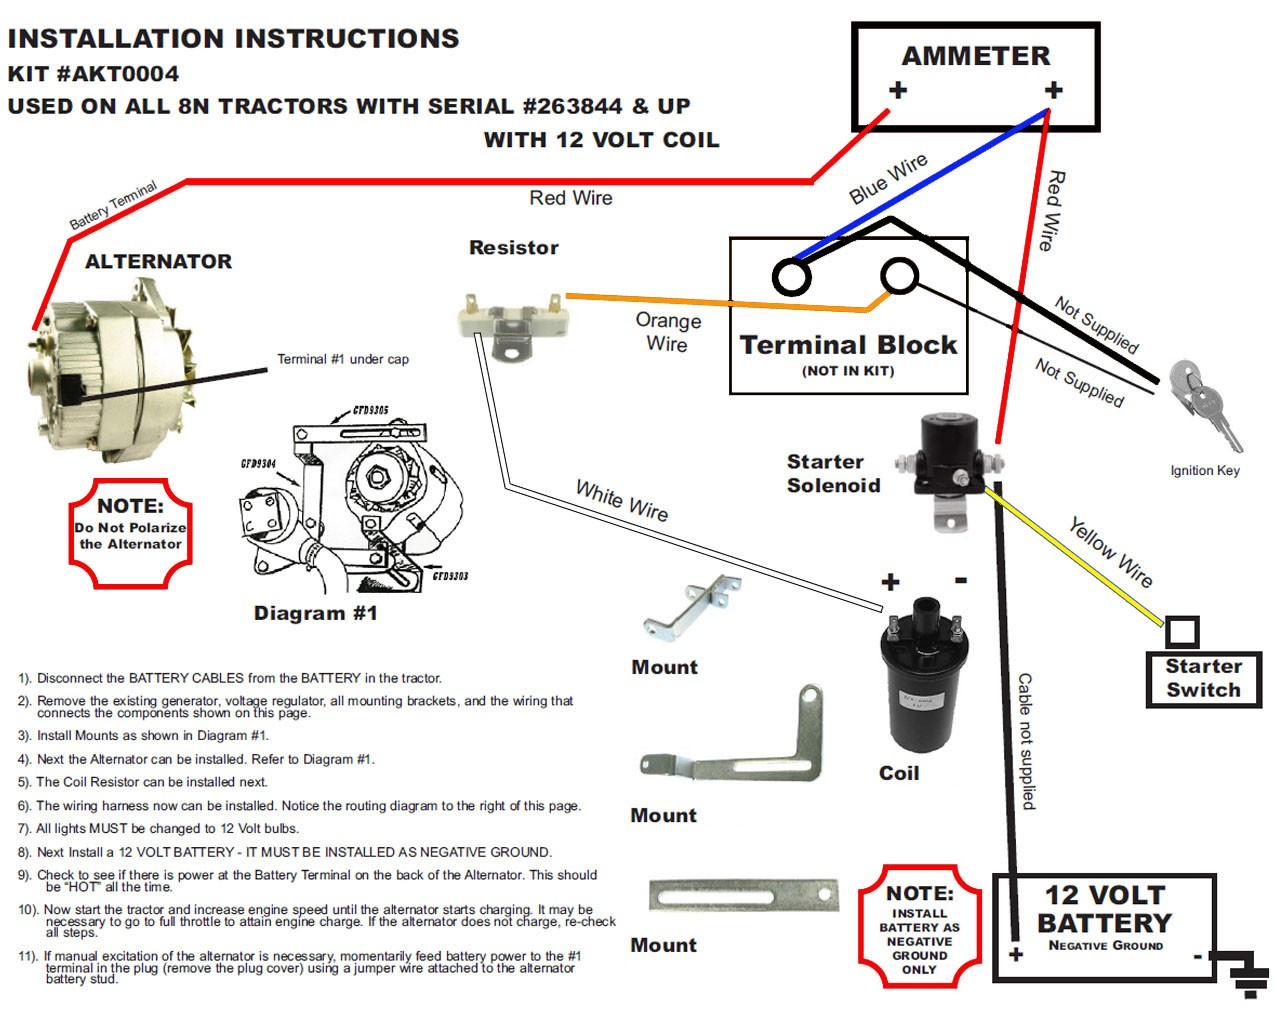 ford 8n 12 volt wiring new 8n ford alternator fits generator conversion kit side ... 8n 12 volt wiring diagram #8